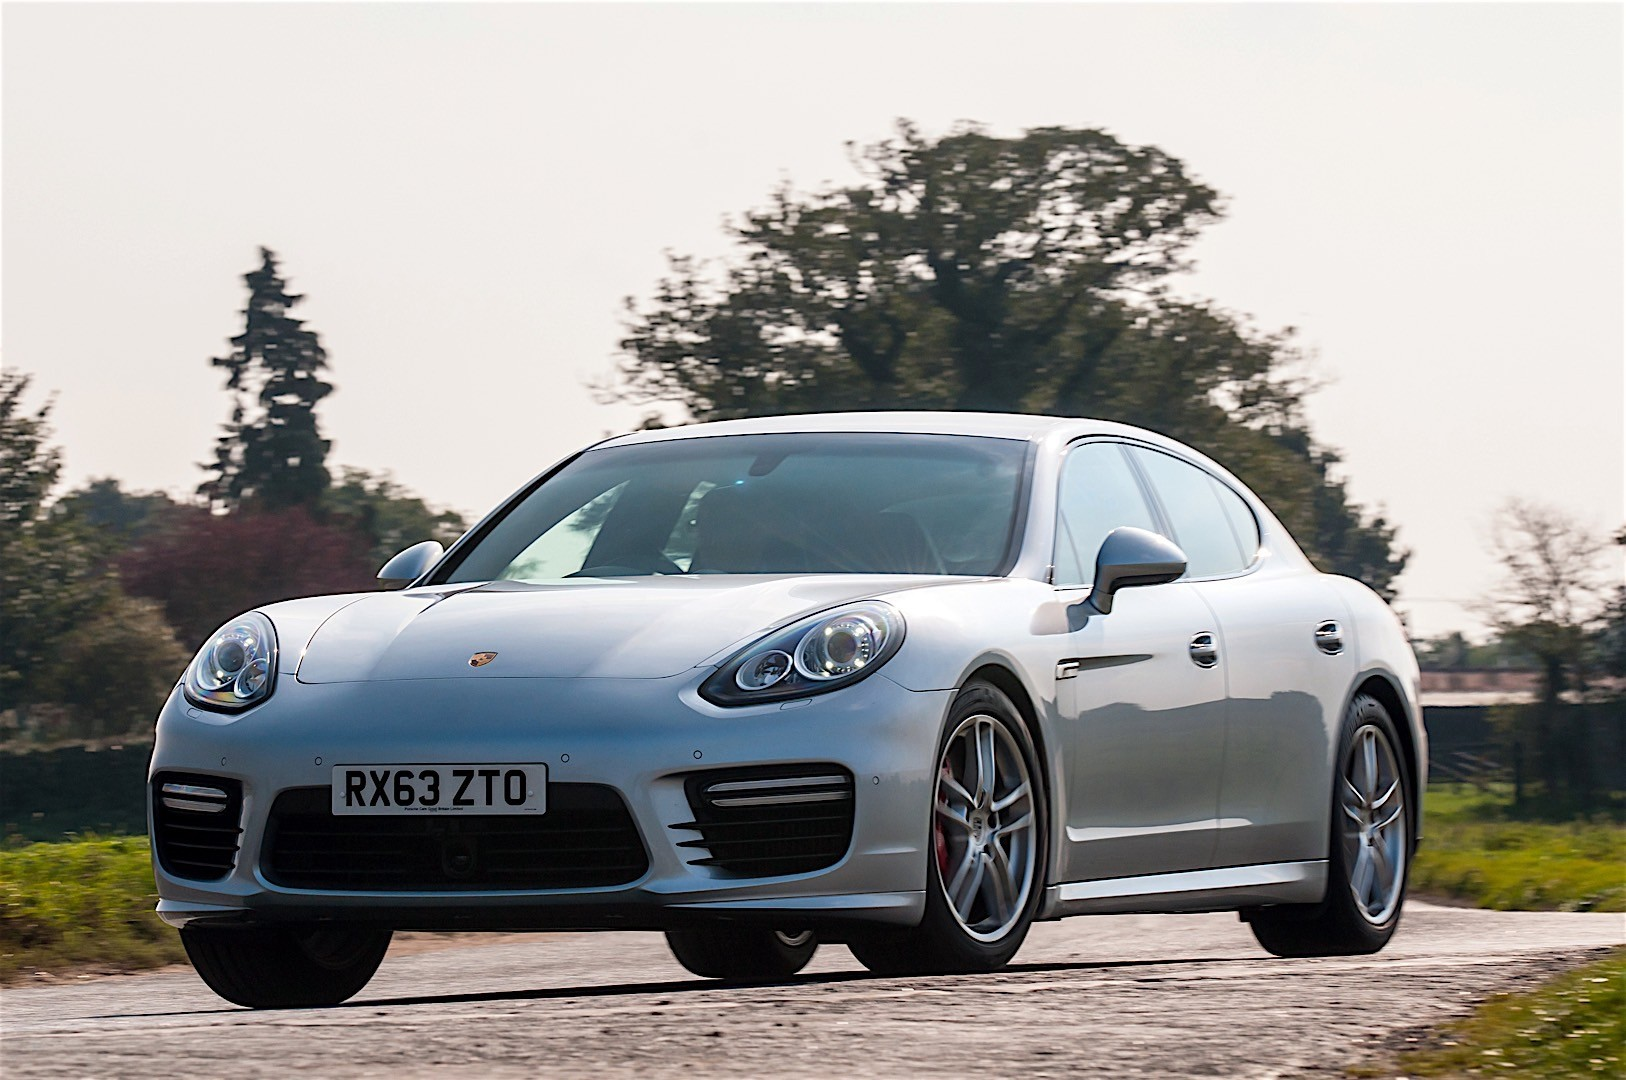 Porsche Panamera Turbo 2013 photo - 7